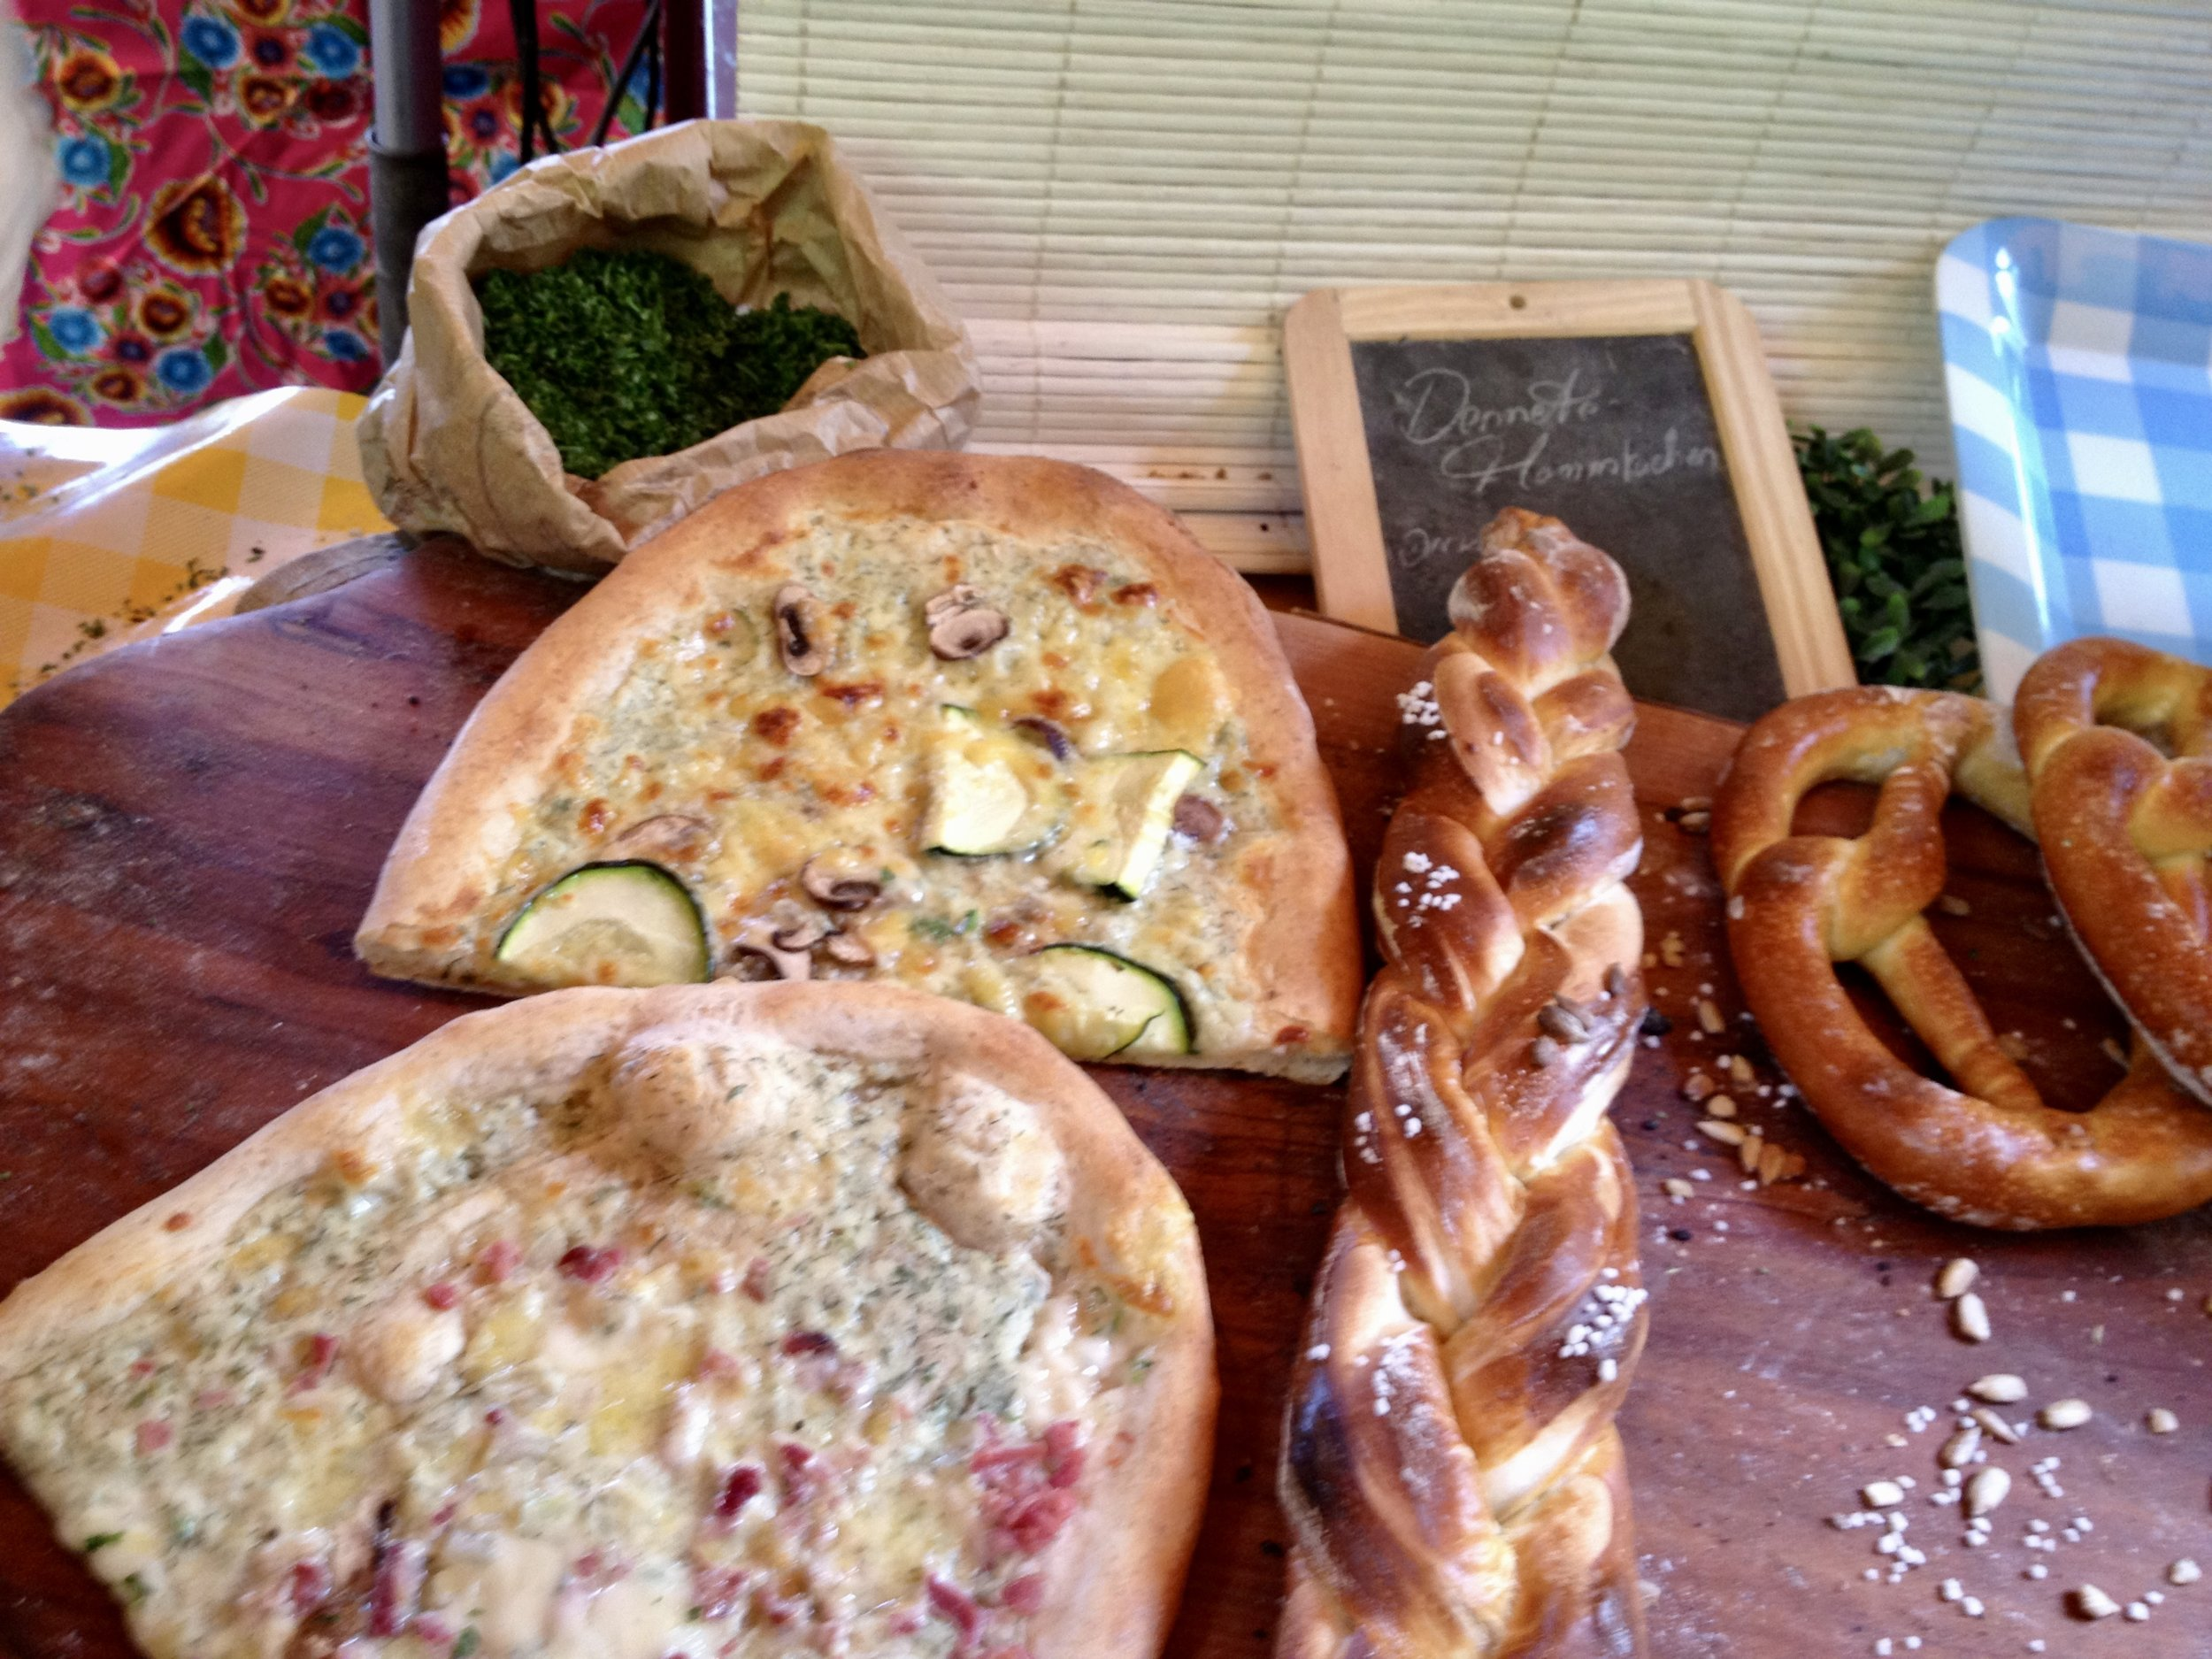 Saturday farmers'market at  Boxhagener Platz . My German friend claims this is not pizza but I disagree.